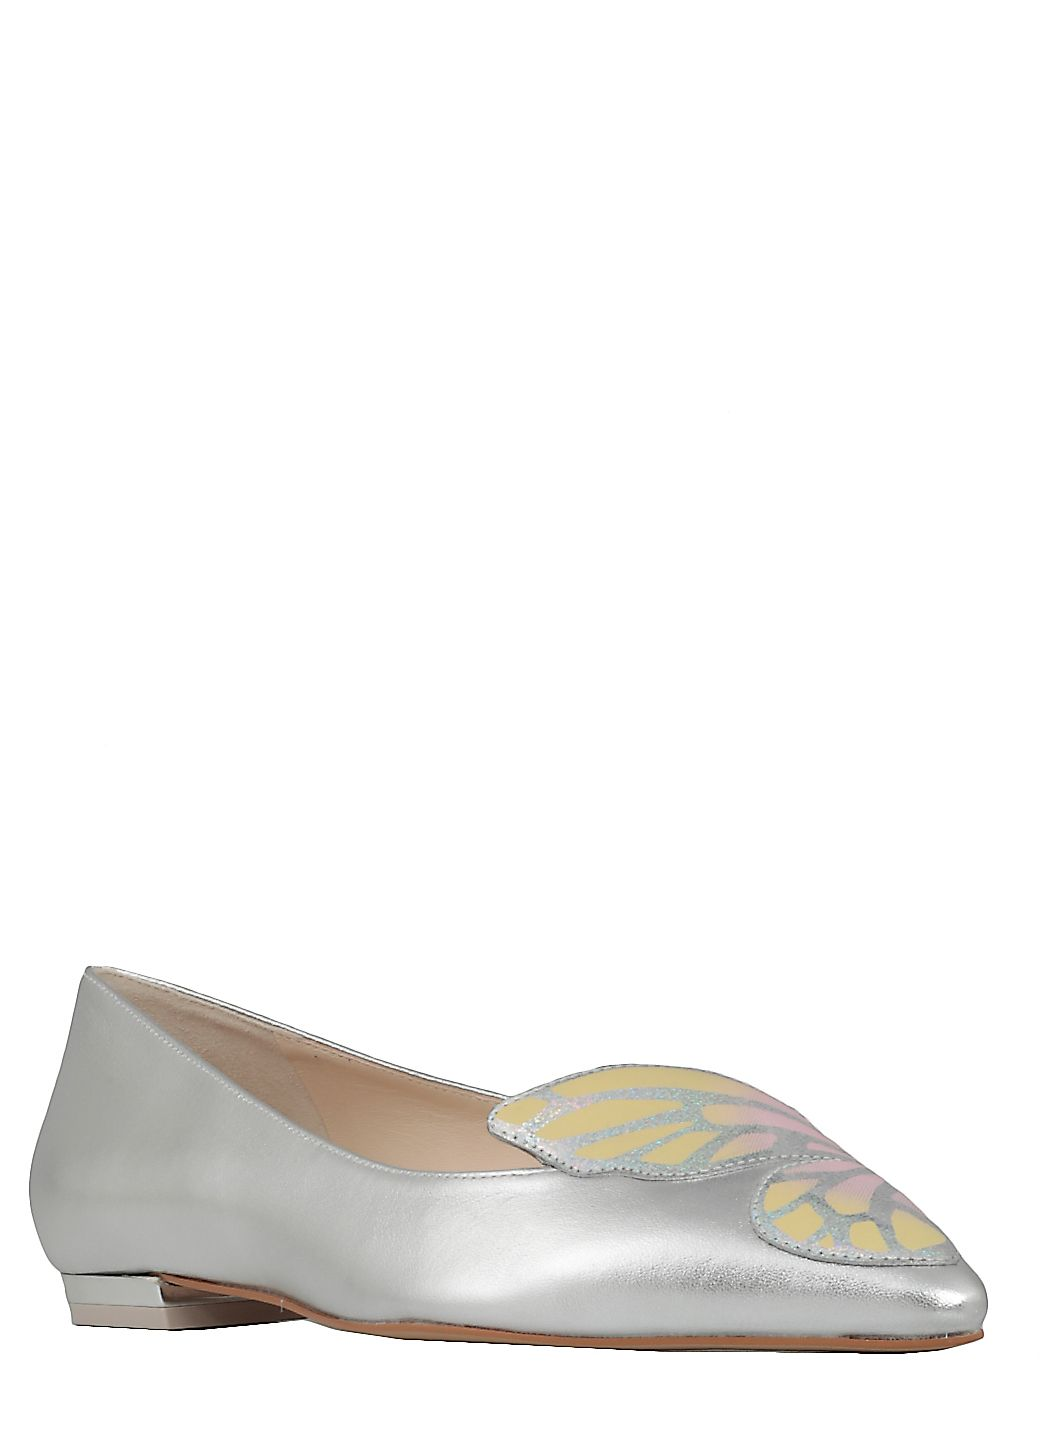 Silver Butterfly Ballet Shoes